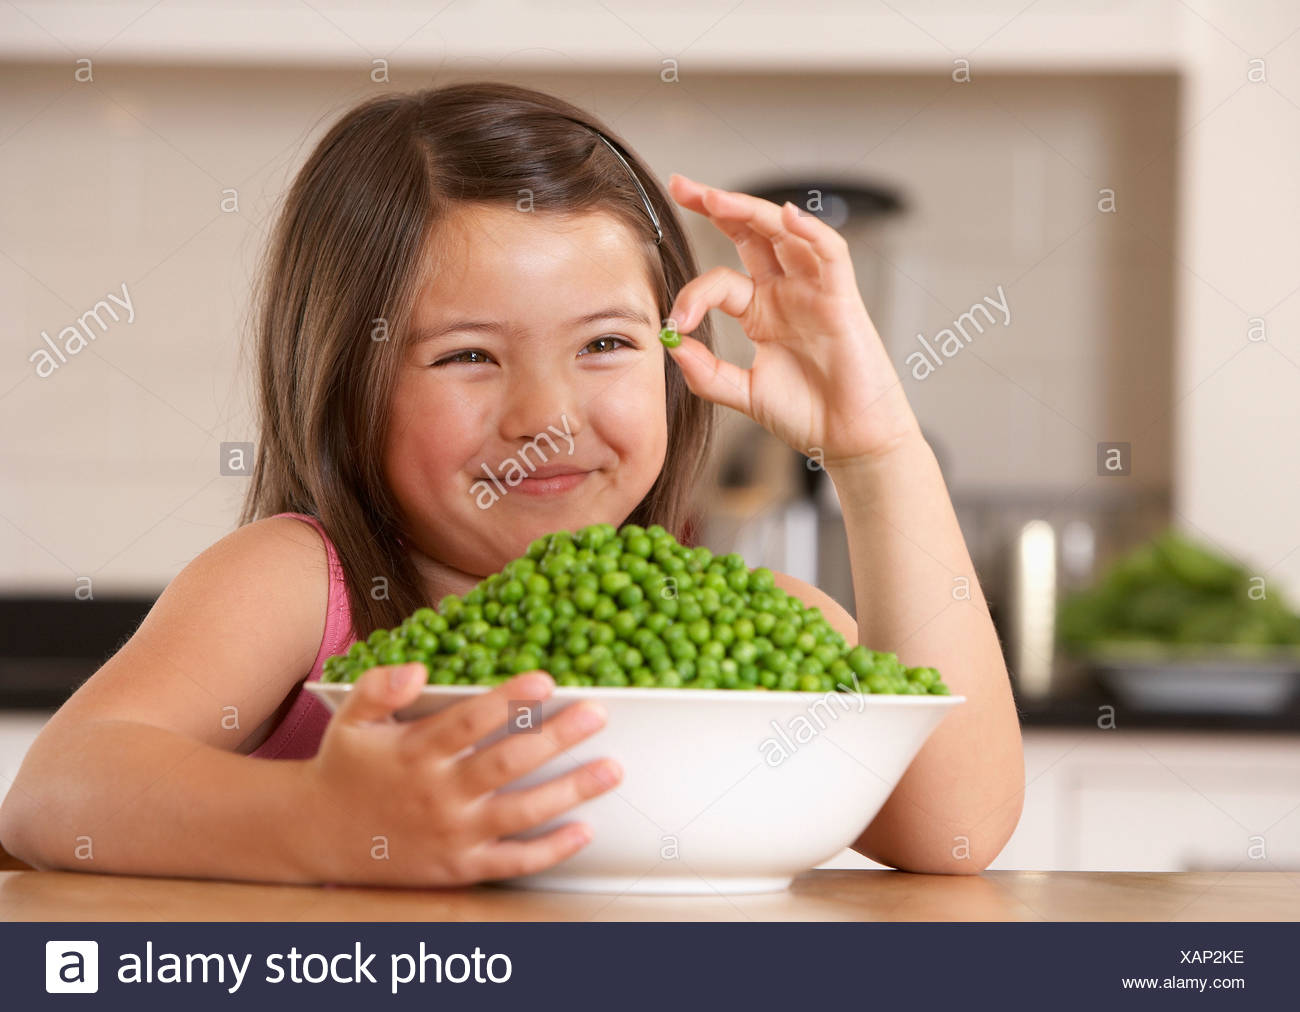 Young girl in kitchen with a bowl of green peas holding one single pea and smiling - Stock Image